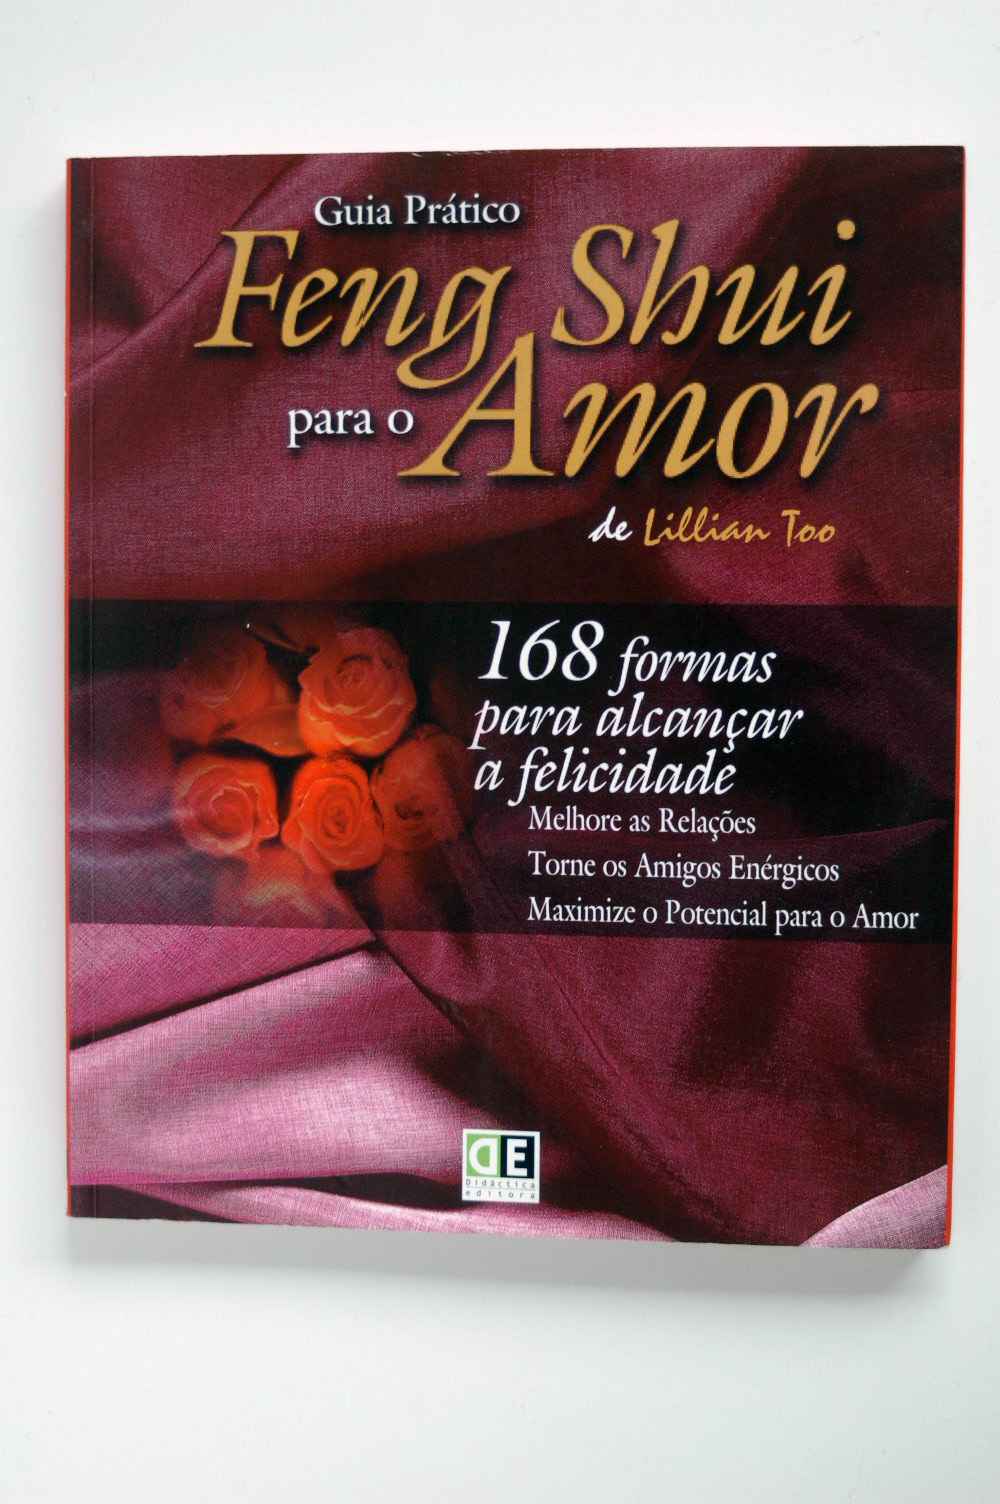 Guia pr tico de feng shui para o amor lillian too helios for Lillian too feng shui